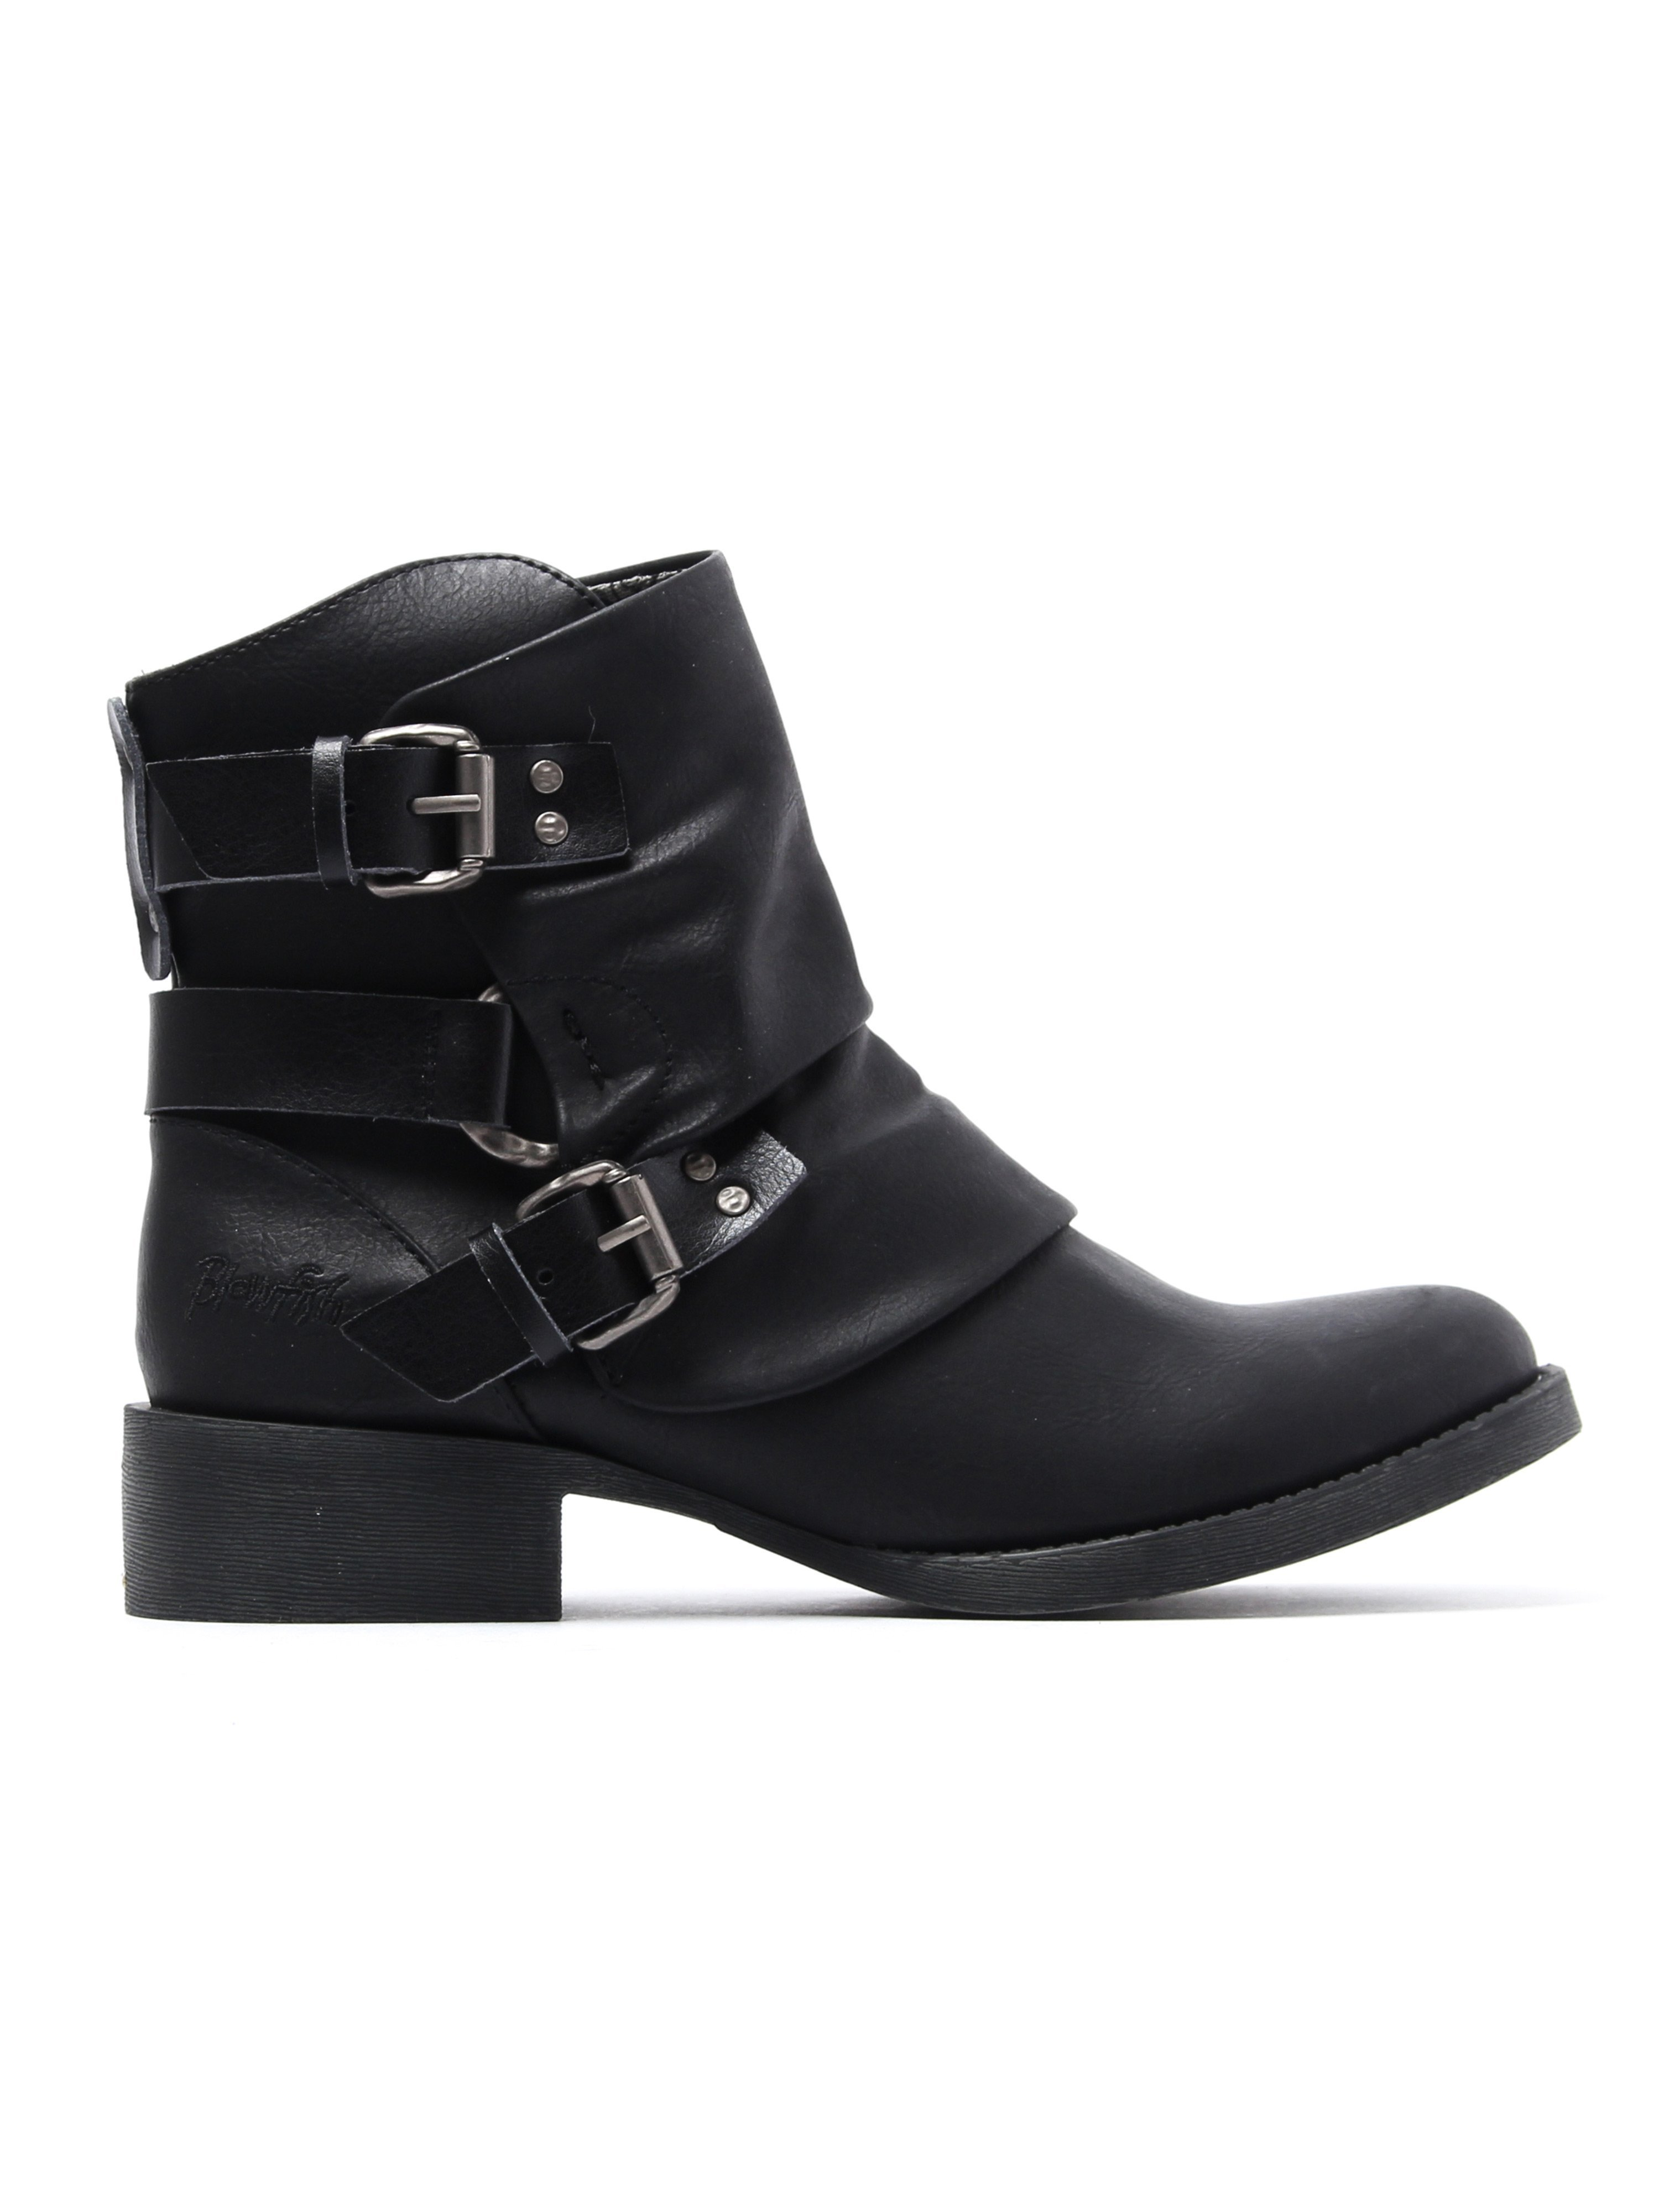 Blowfish Women's Korrekt Ankle Boots - Black Lonestar